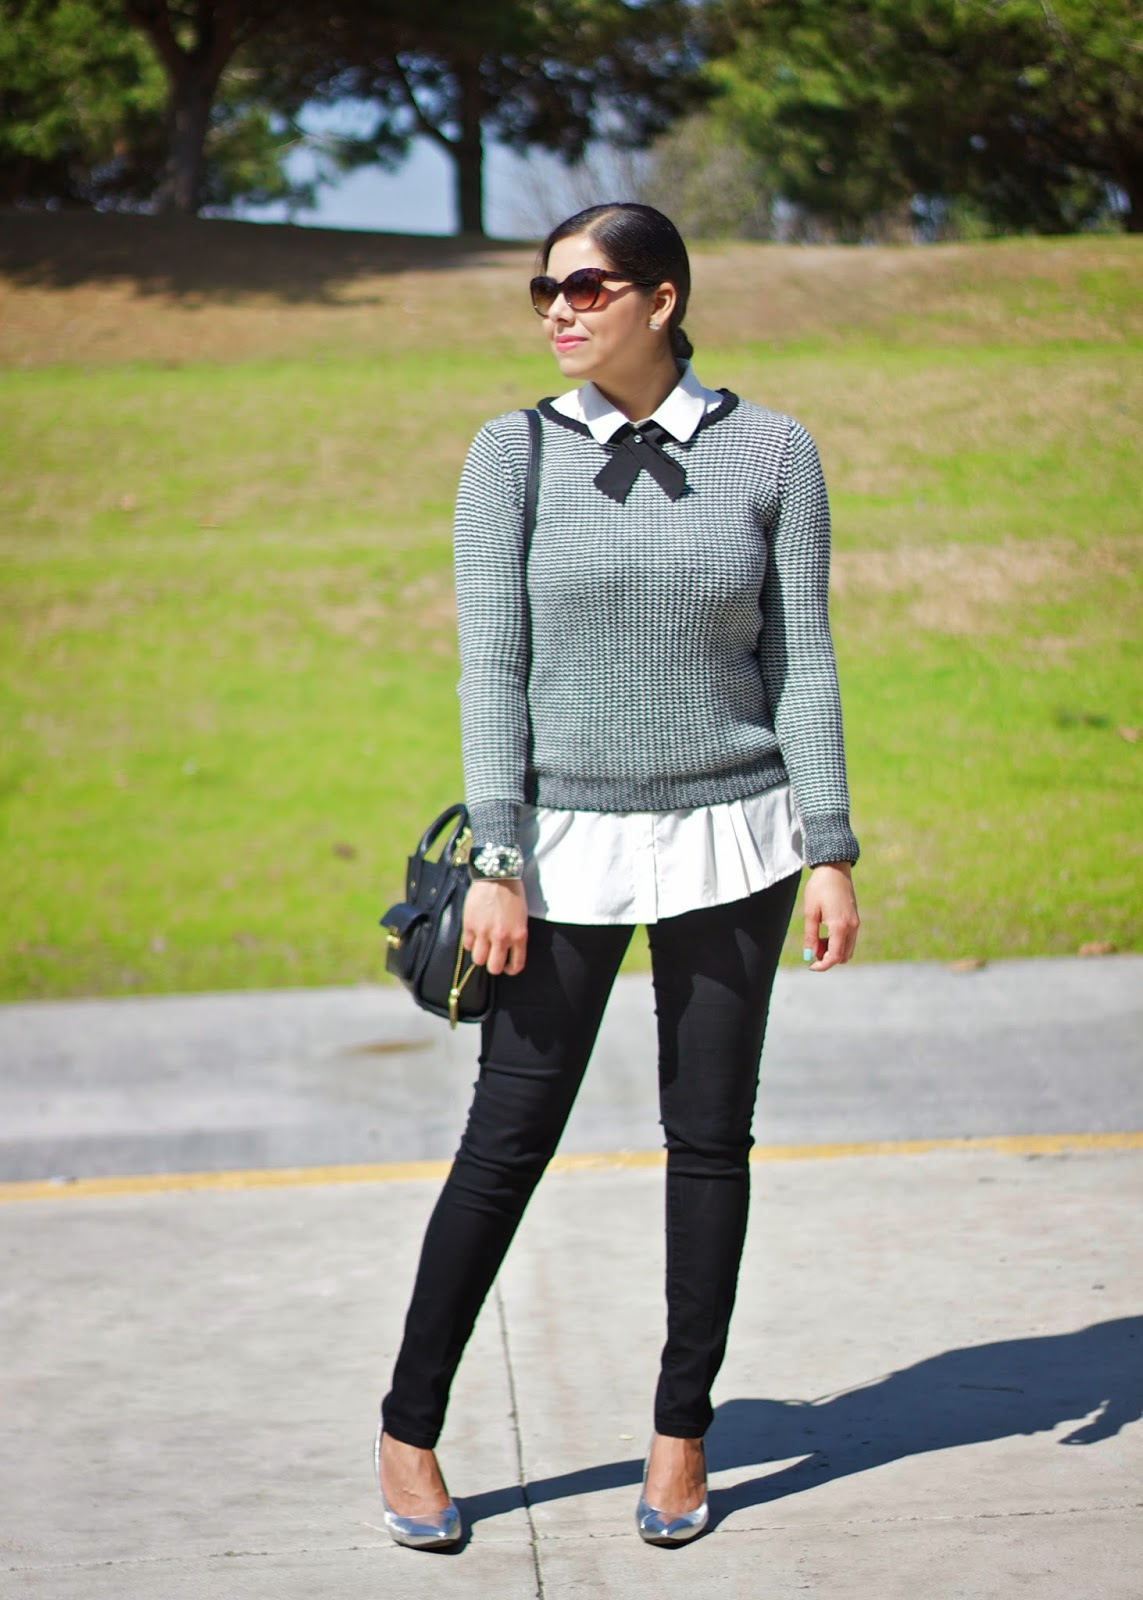 Glam up the Sweater, San Diego Fashion Blogger